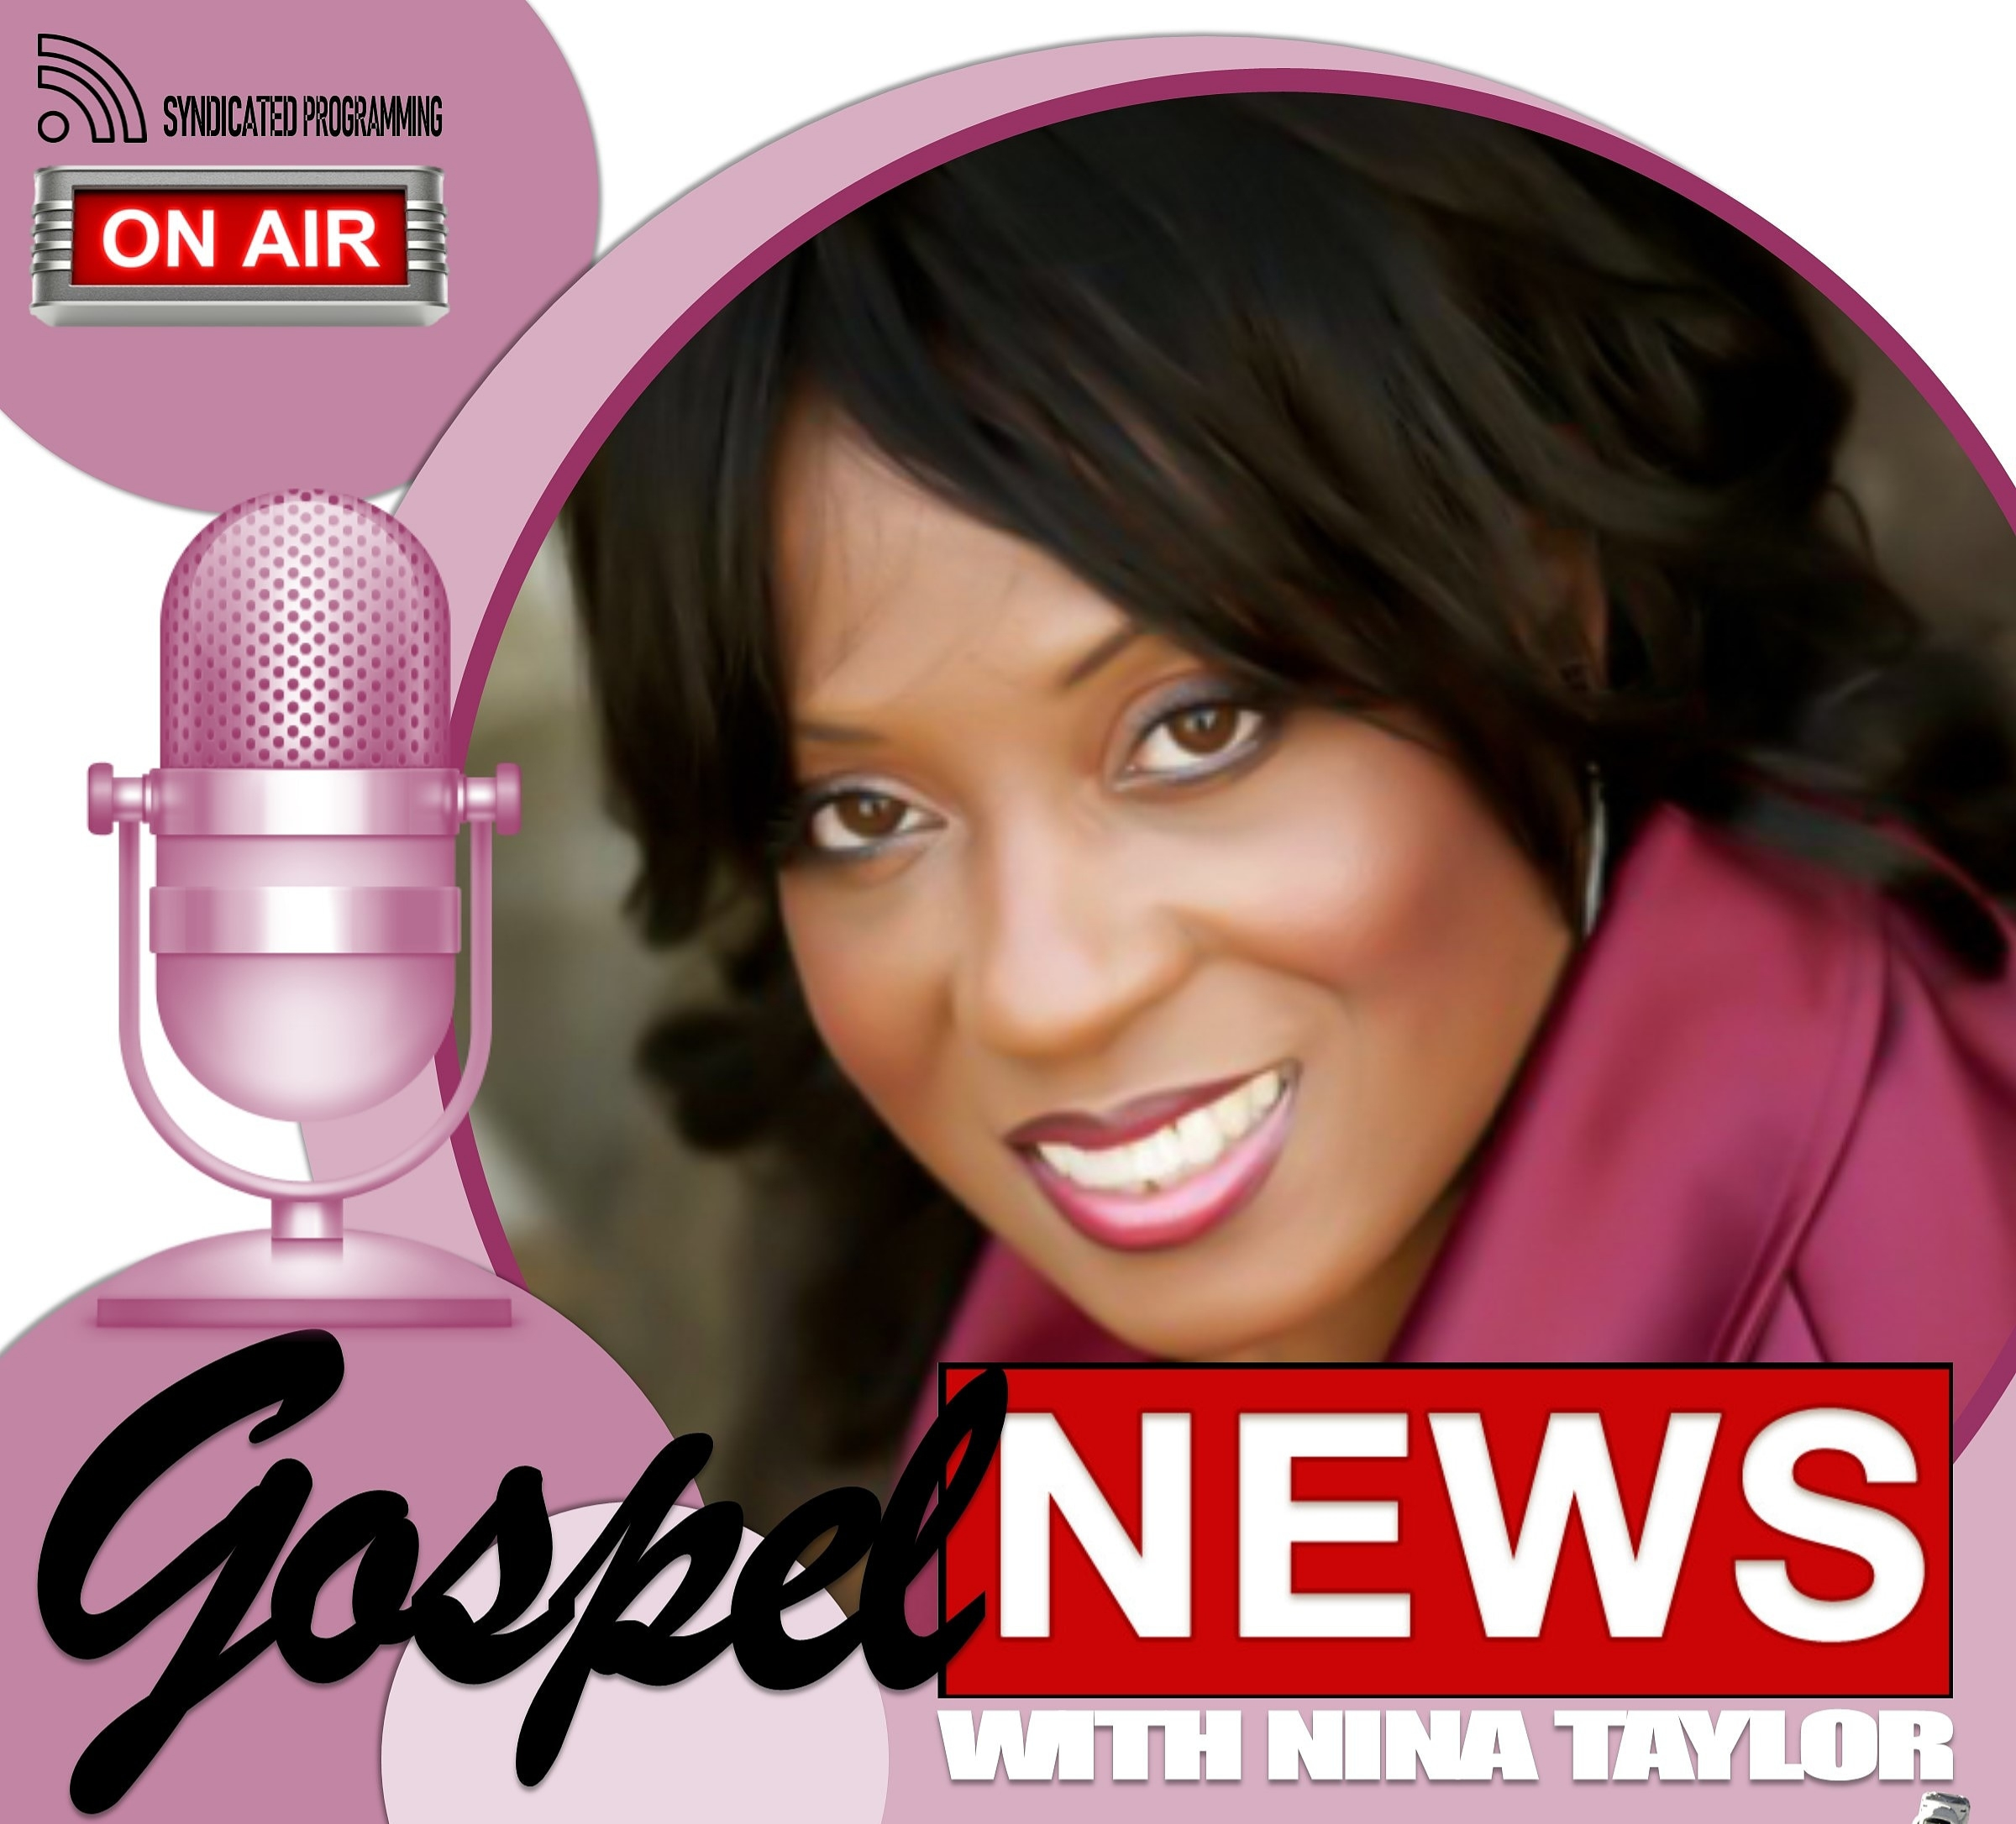 Gospel News Show Mondays at Noon